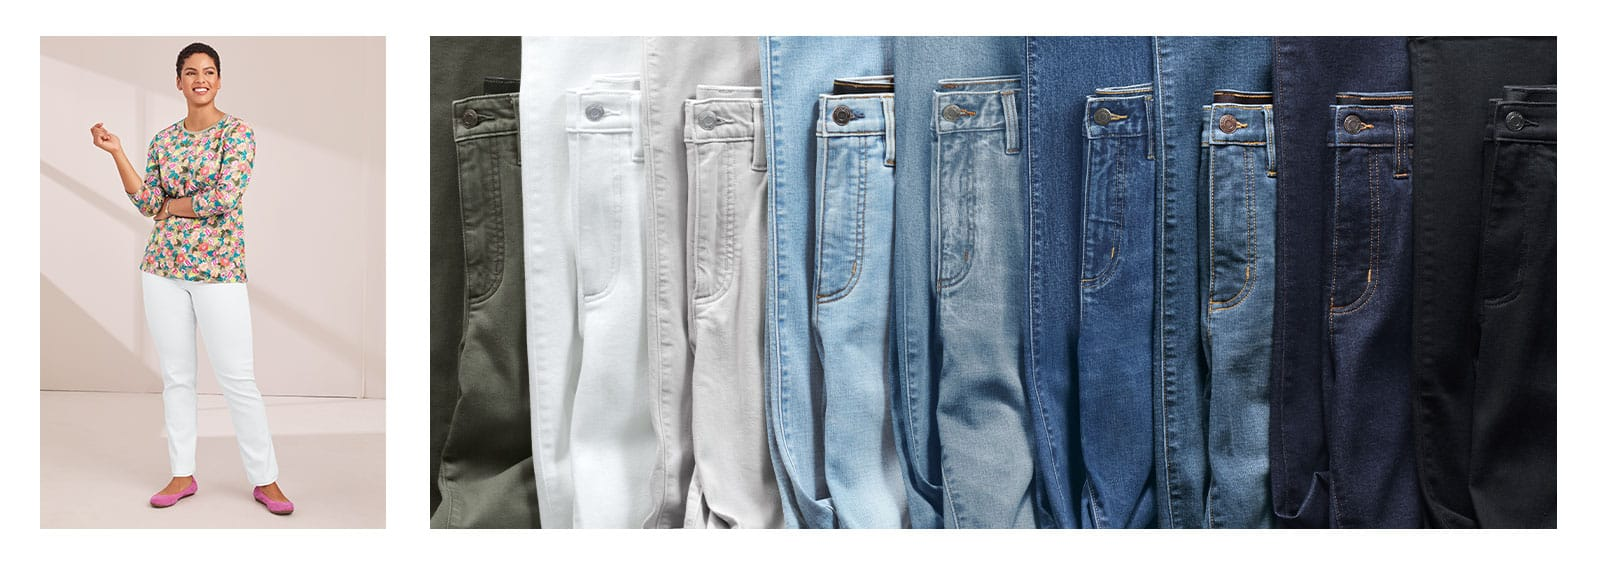 How to Make Denim Outfits a Key Part of Your Wardrobe